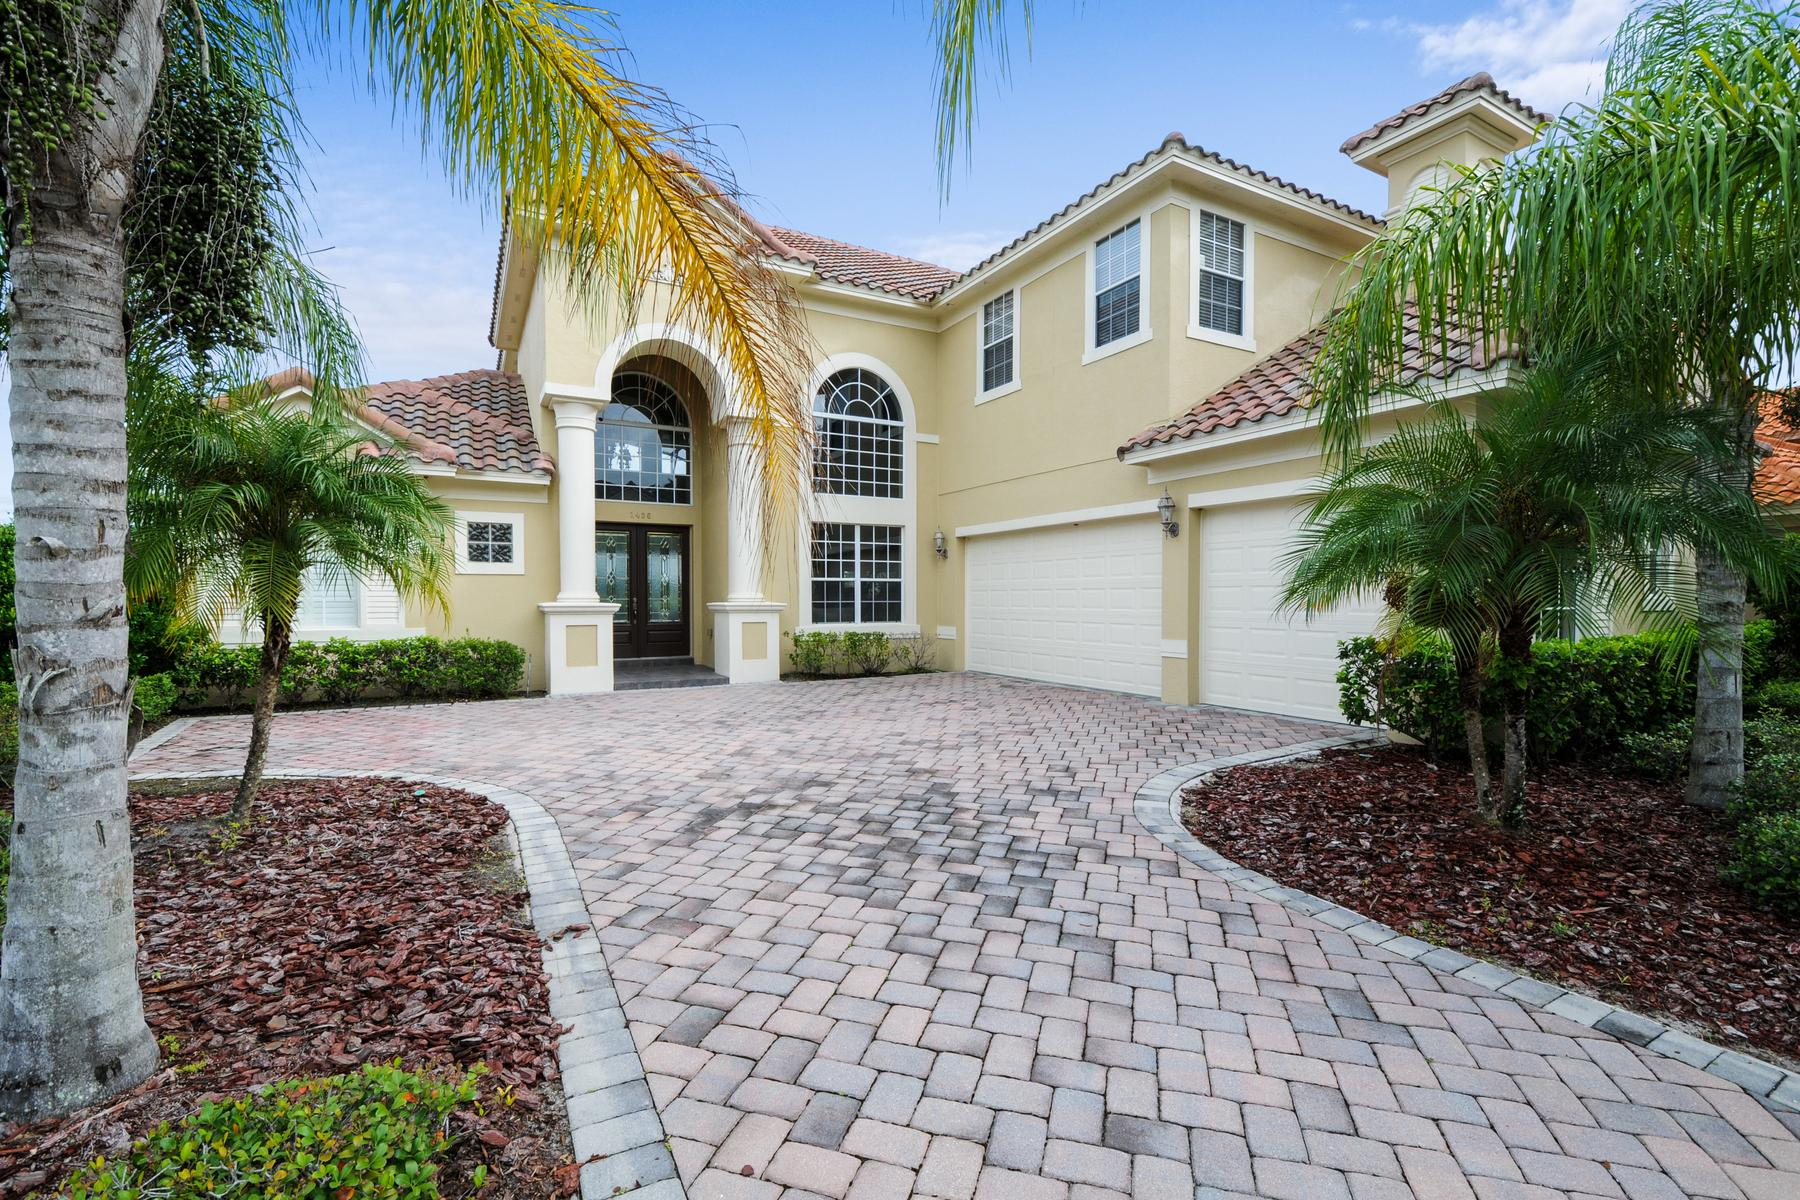 Property For Sale at Davenport, FL